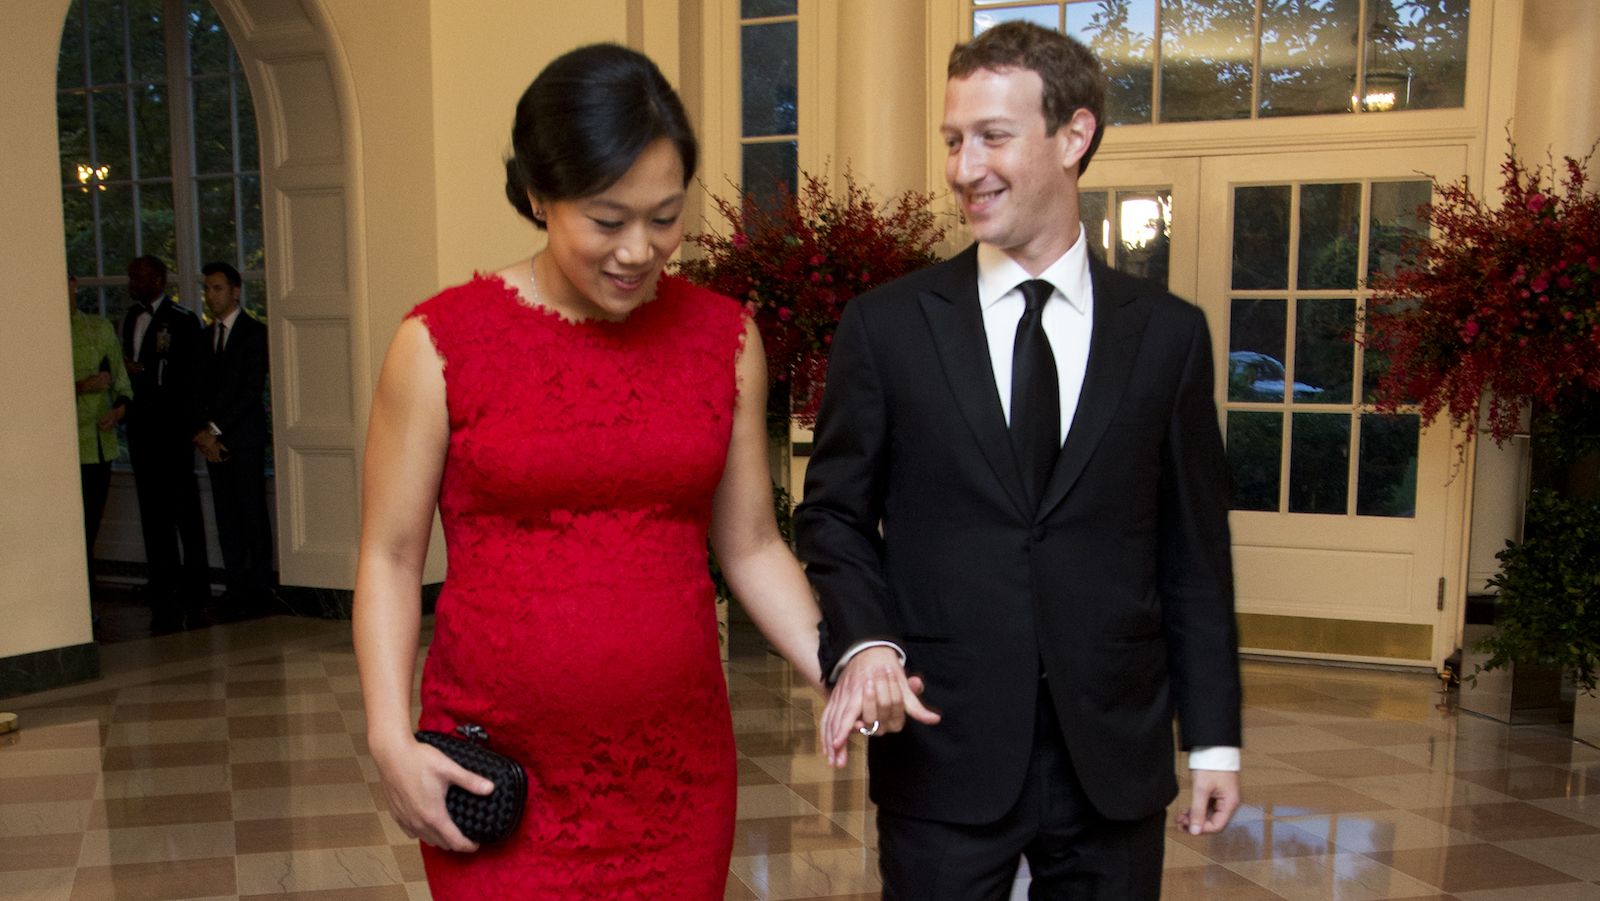 Facebook Chairman and Chief Executive Officer Mark Zuckerberg and his wife Priscilla Chan, arrive for a State Dinner in honor of Chinese President Xi Jinping, in the East Room of the White House in Washington, Friday, Sept. 25, 2015.  (AP Photo/Manuel Balce Ceneta)